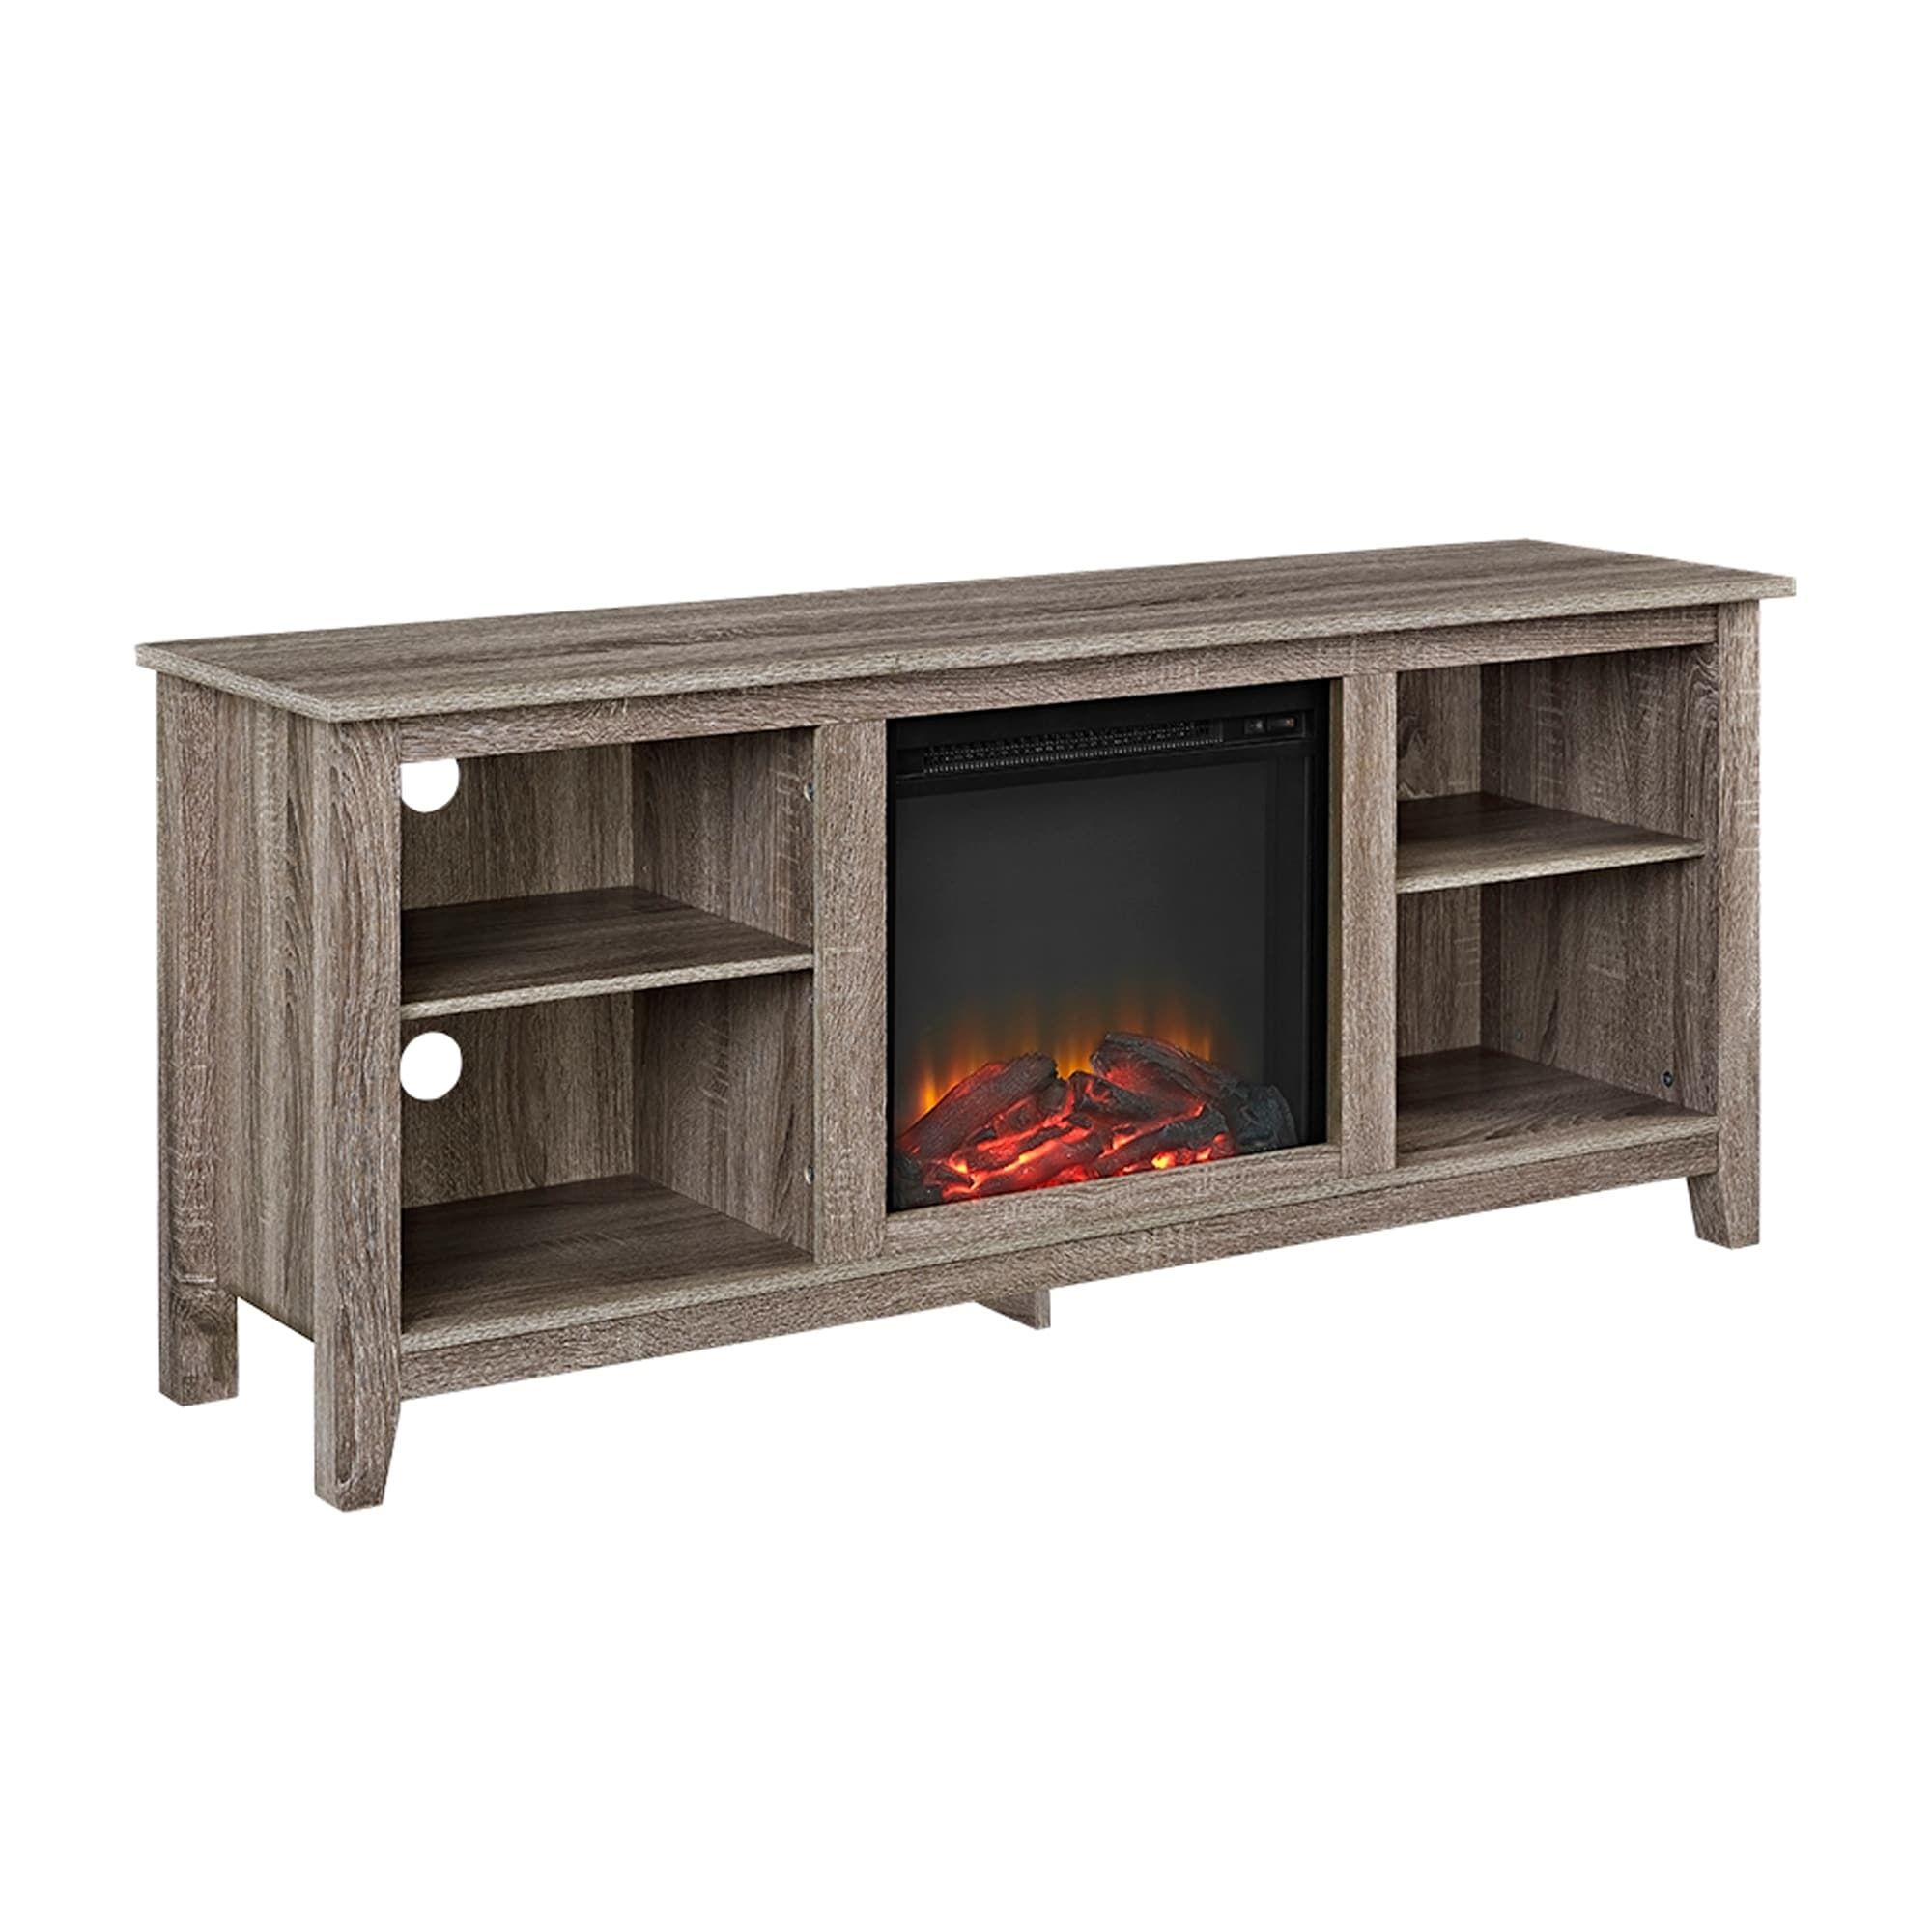 58 Inch Driftwood Wood Tv Stand With Fireplace Free Shipping  # Etagere Tv Bois